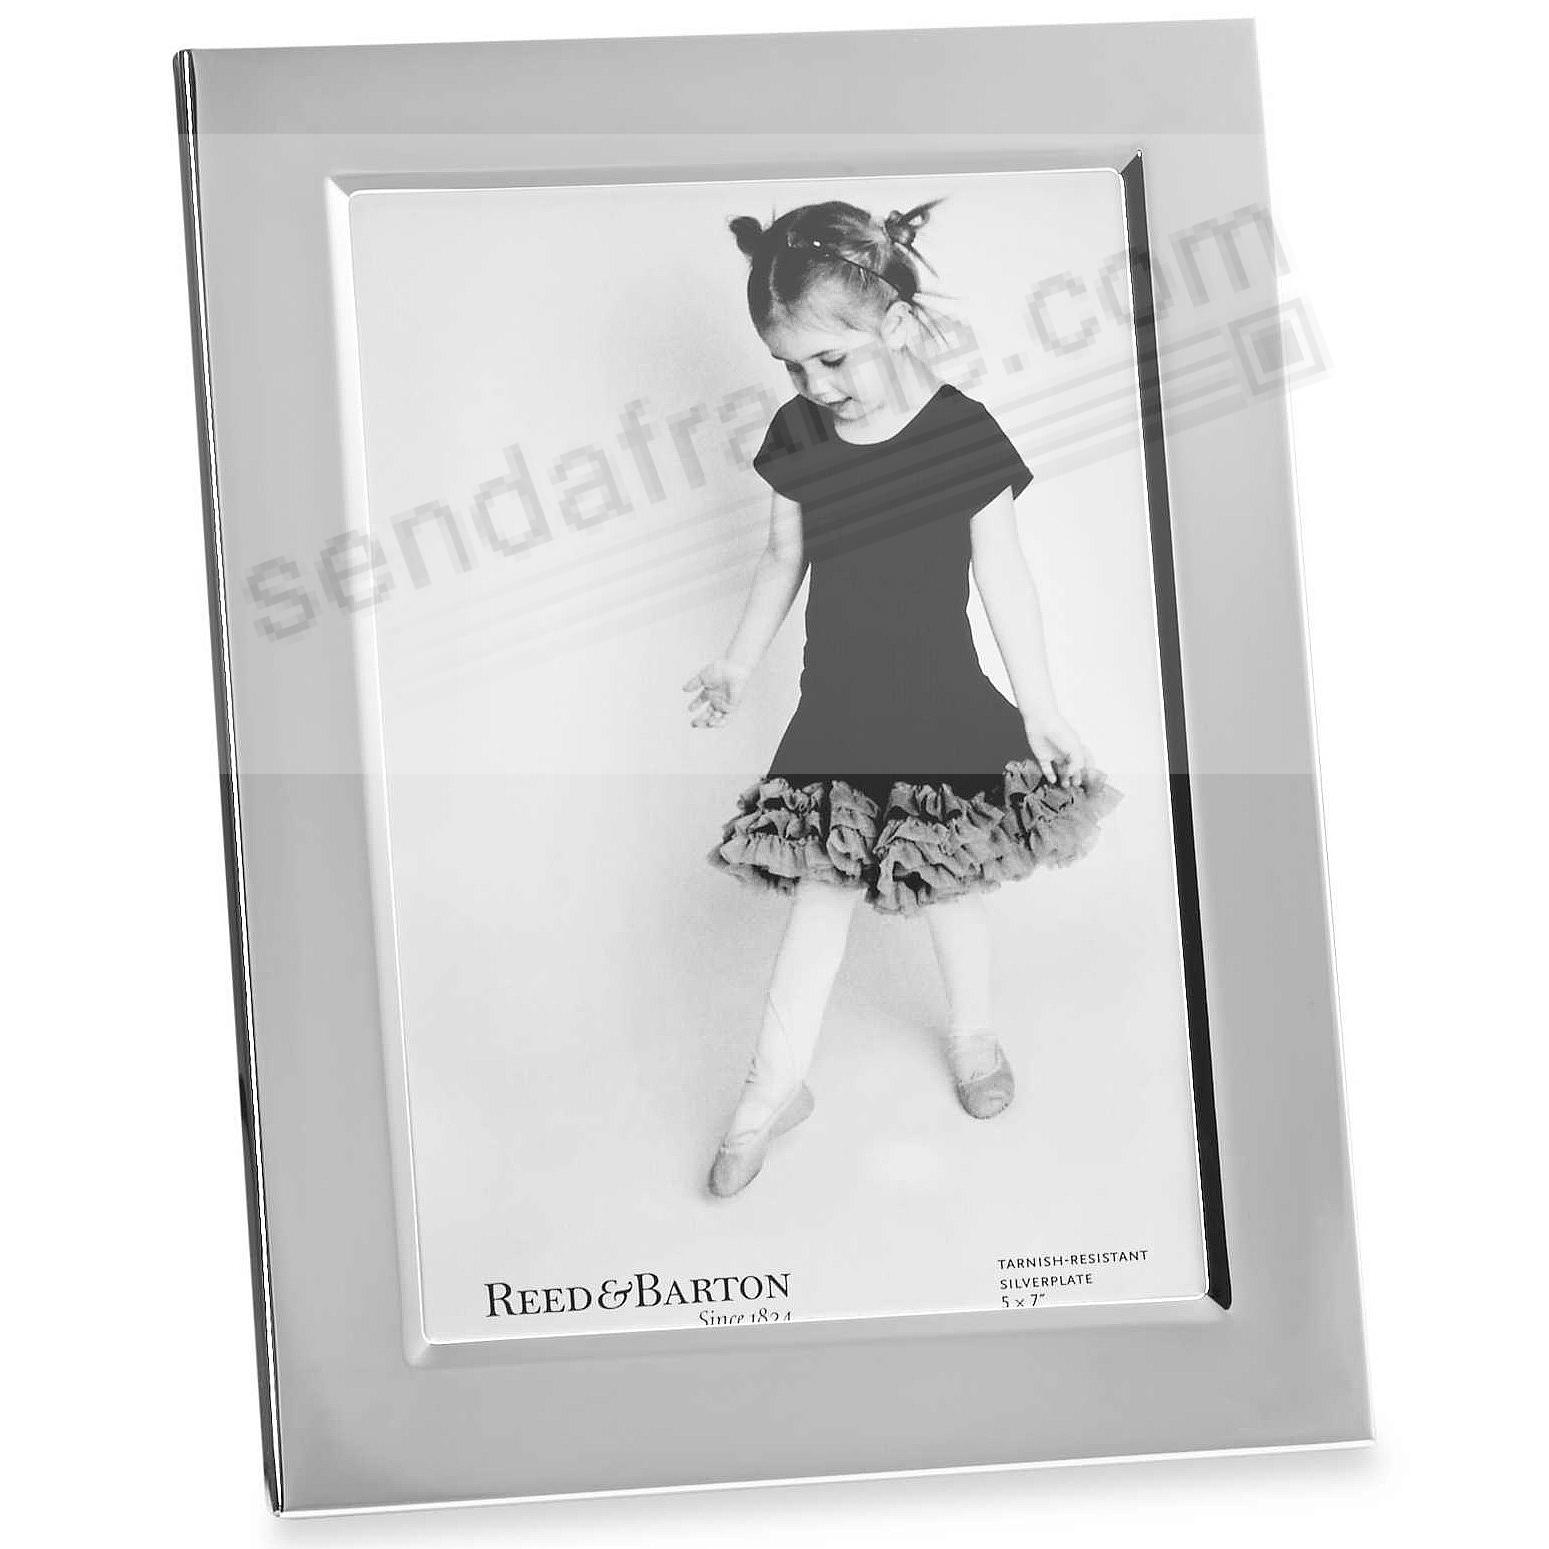 The original Reed & Barton® silverplate channel border 5x7 frame - engraveable